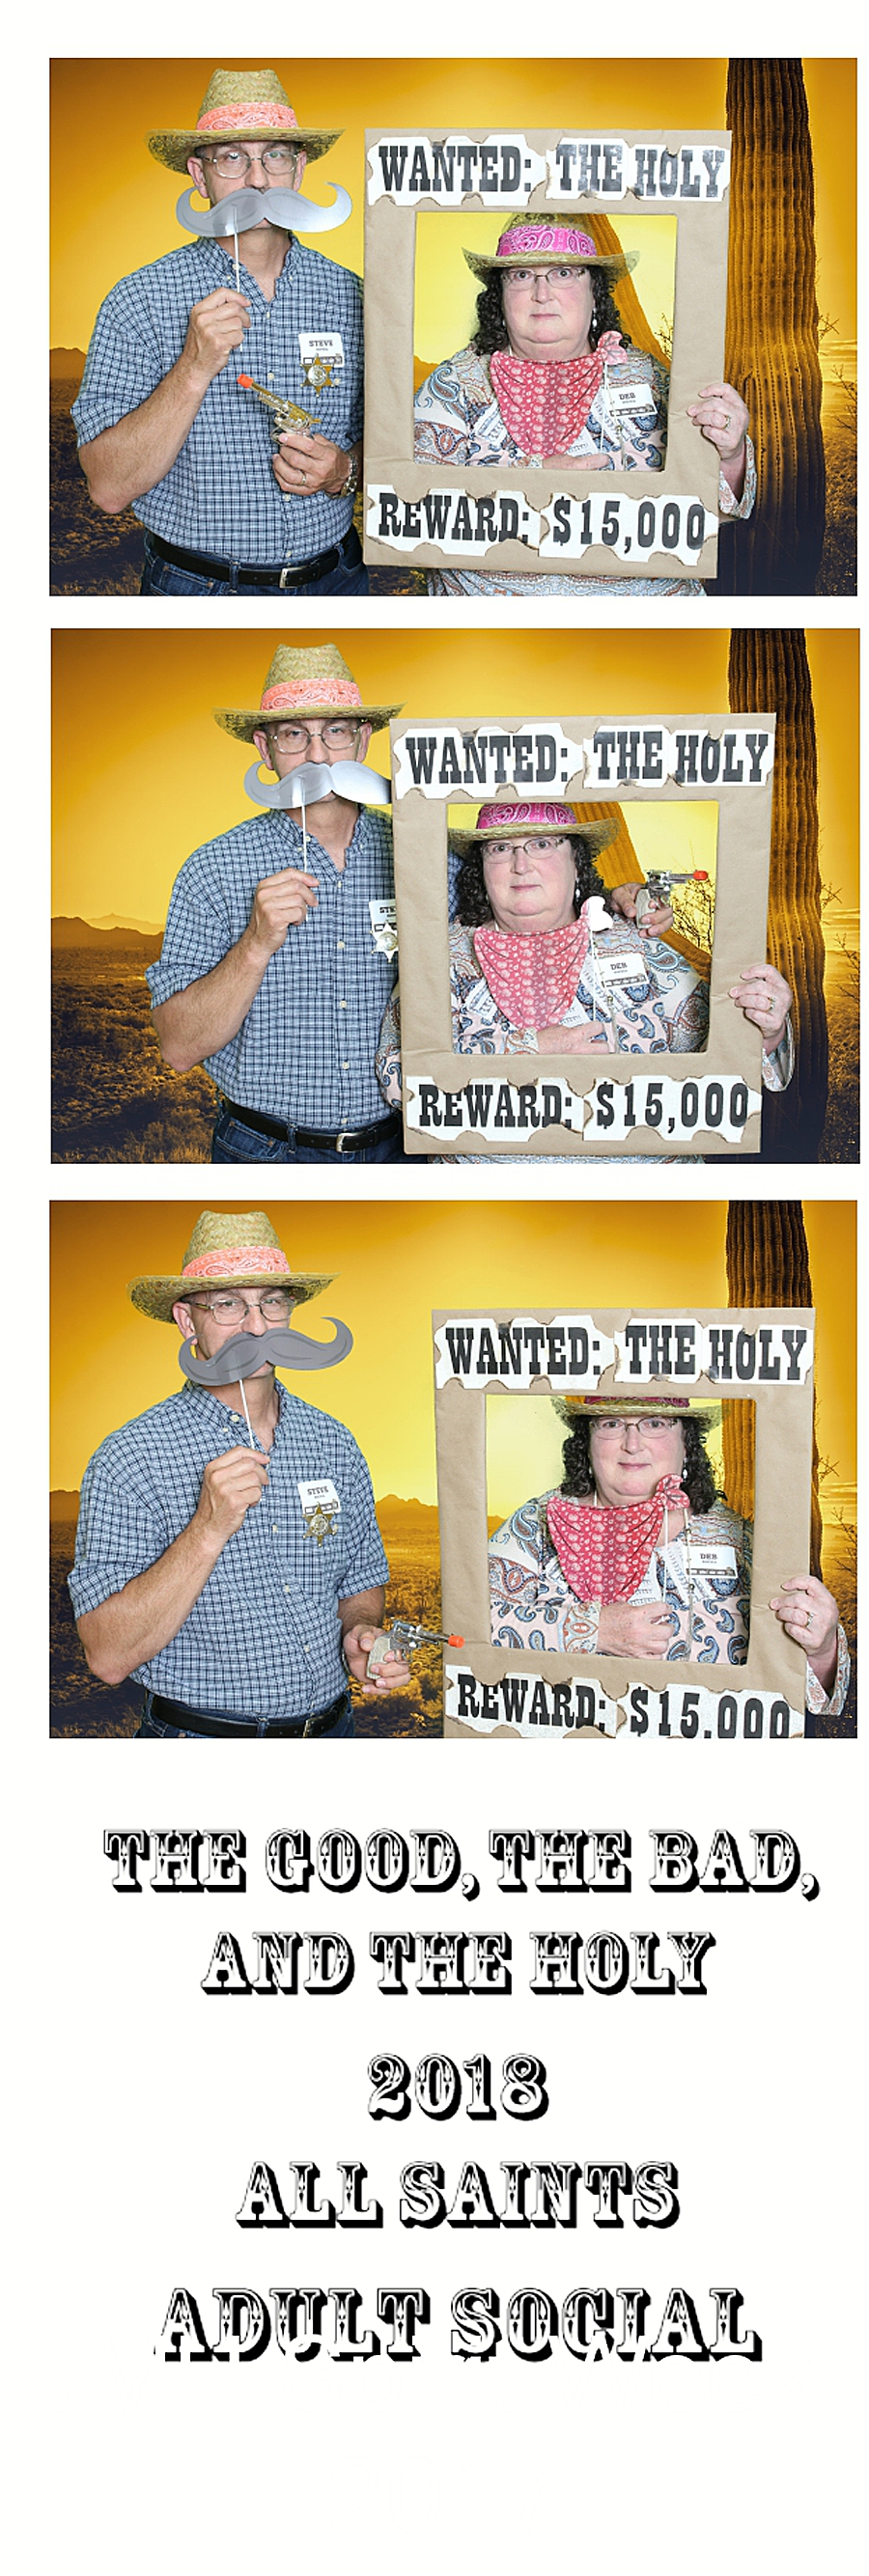 Knoxville Photo Booth_1306.jpg